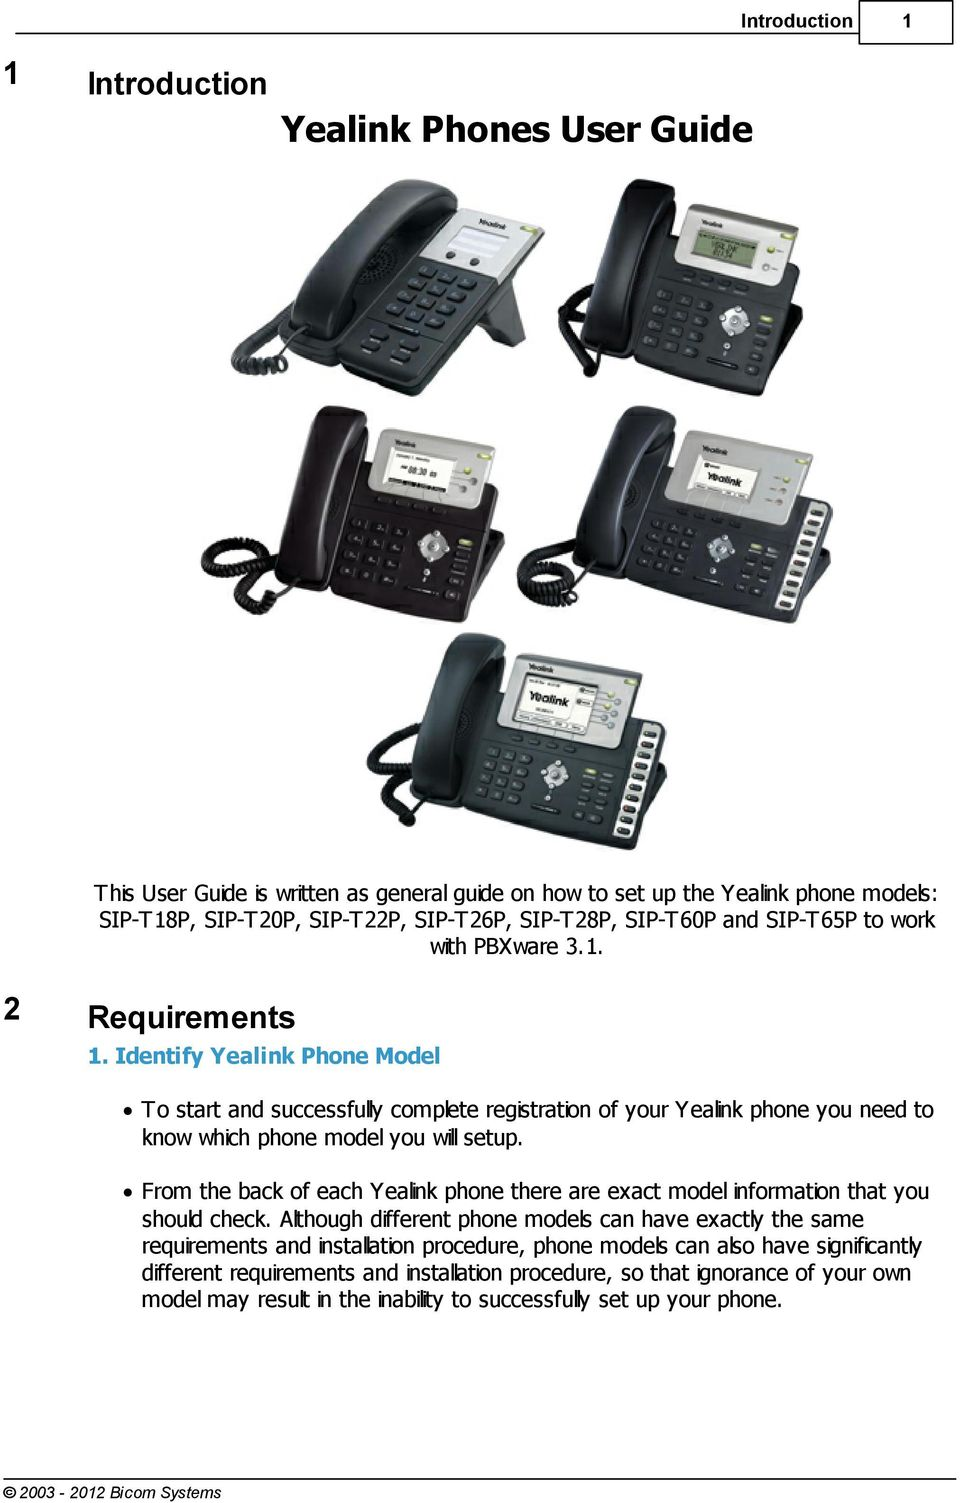 From the back of each Yealink phone there are exact model information that you should check.